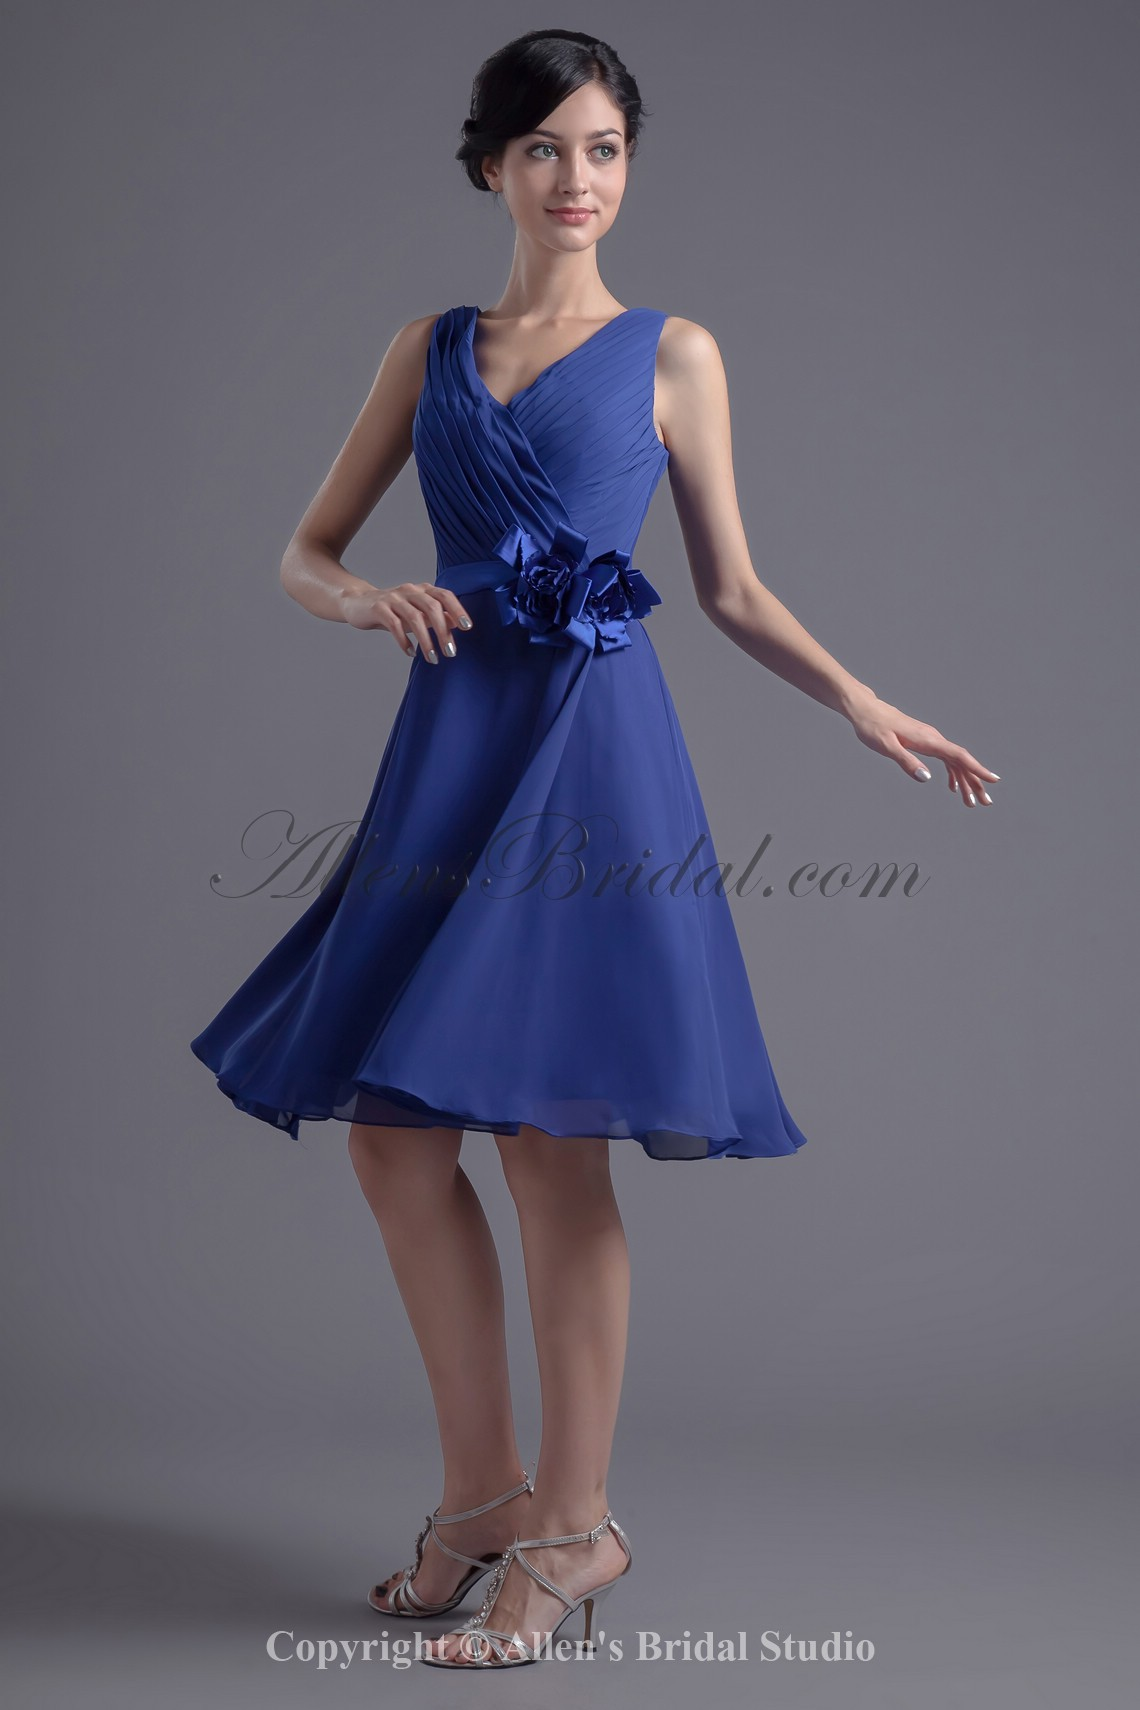 /7-50/chiffon-v-neckline-a-line-knee-length-hand-made-flowers-cocktail-dress.jpg